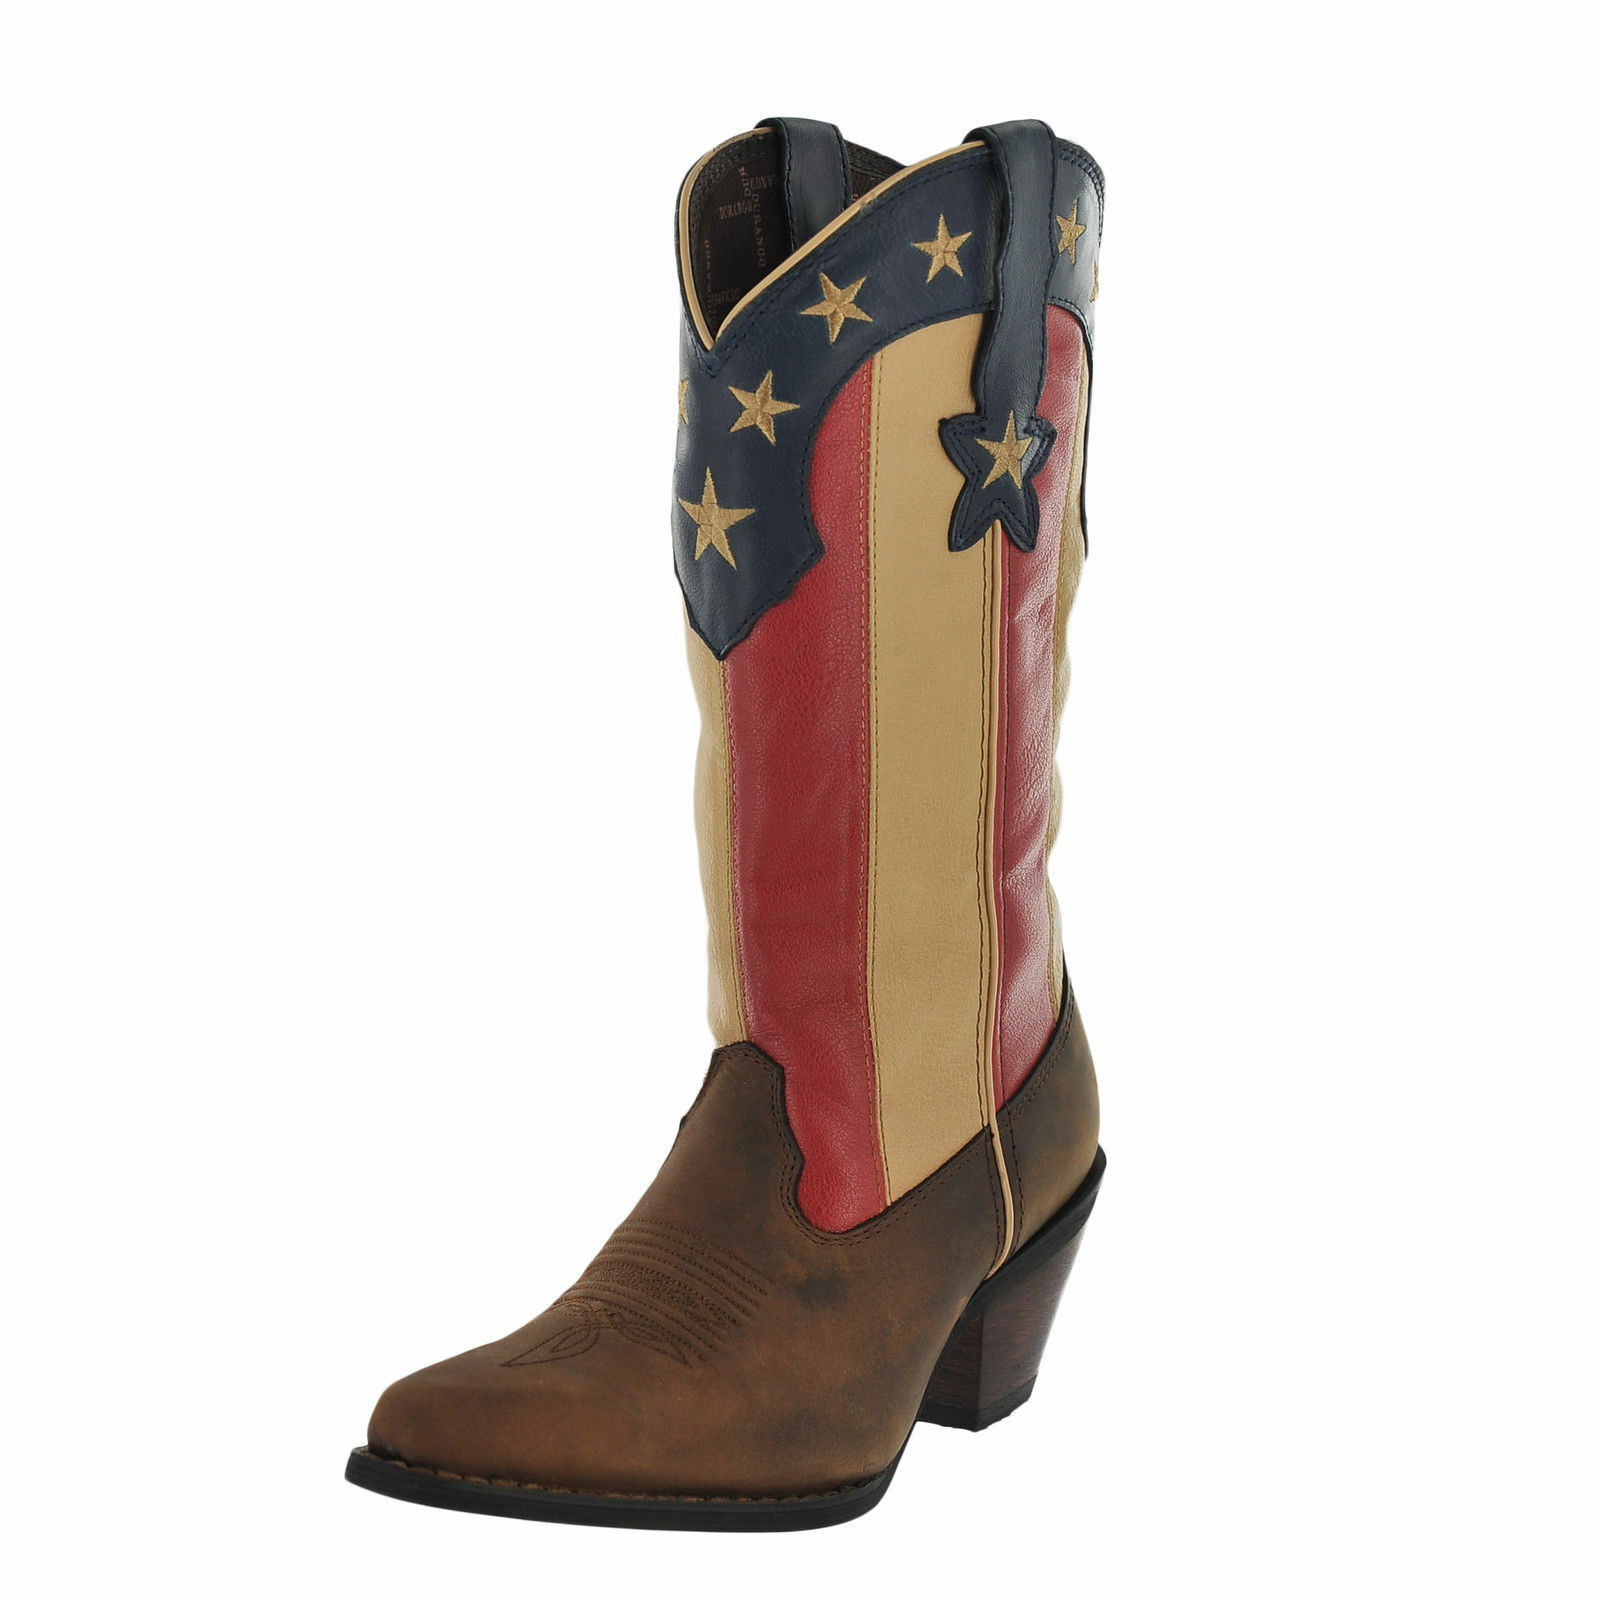 LADIES DURANGO CRUSH STARS & STRIPES AMERICAN FLAG COWGIRL BOOTS DRD0060